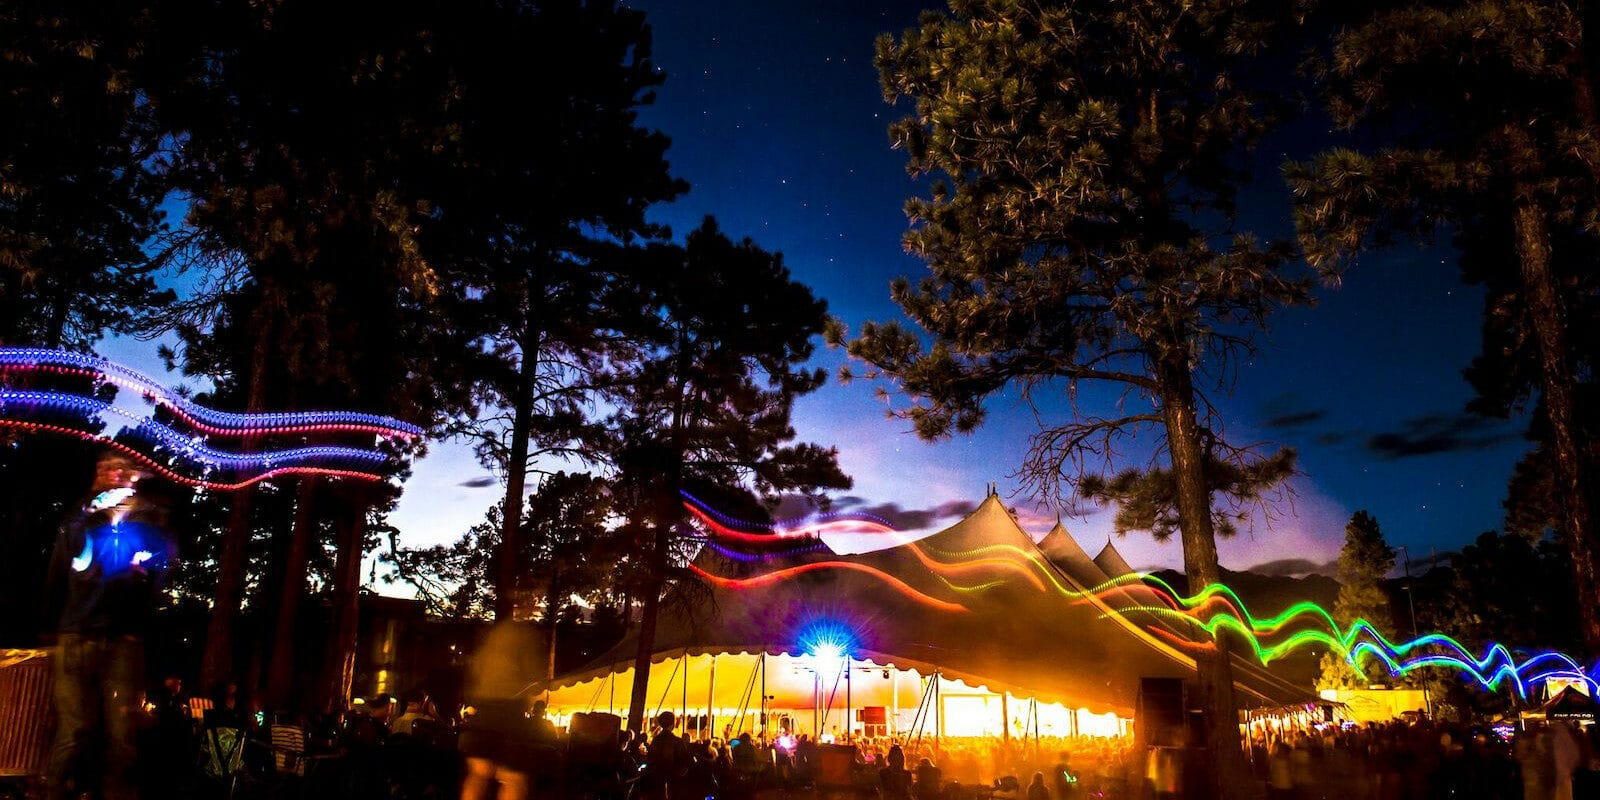 Image of the tent at night at the Four Corners Folk Festival in Pagosa Springs, Colorado